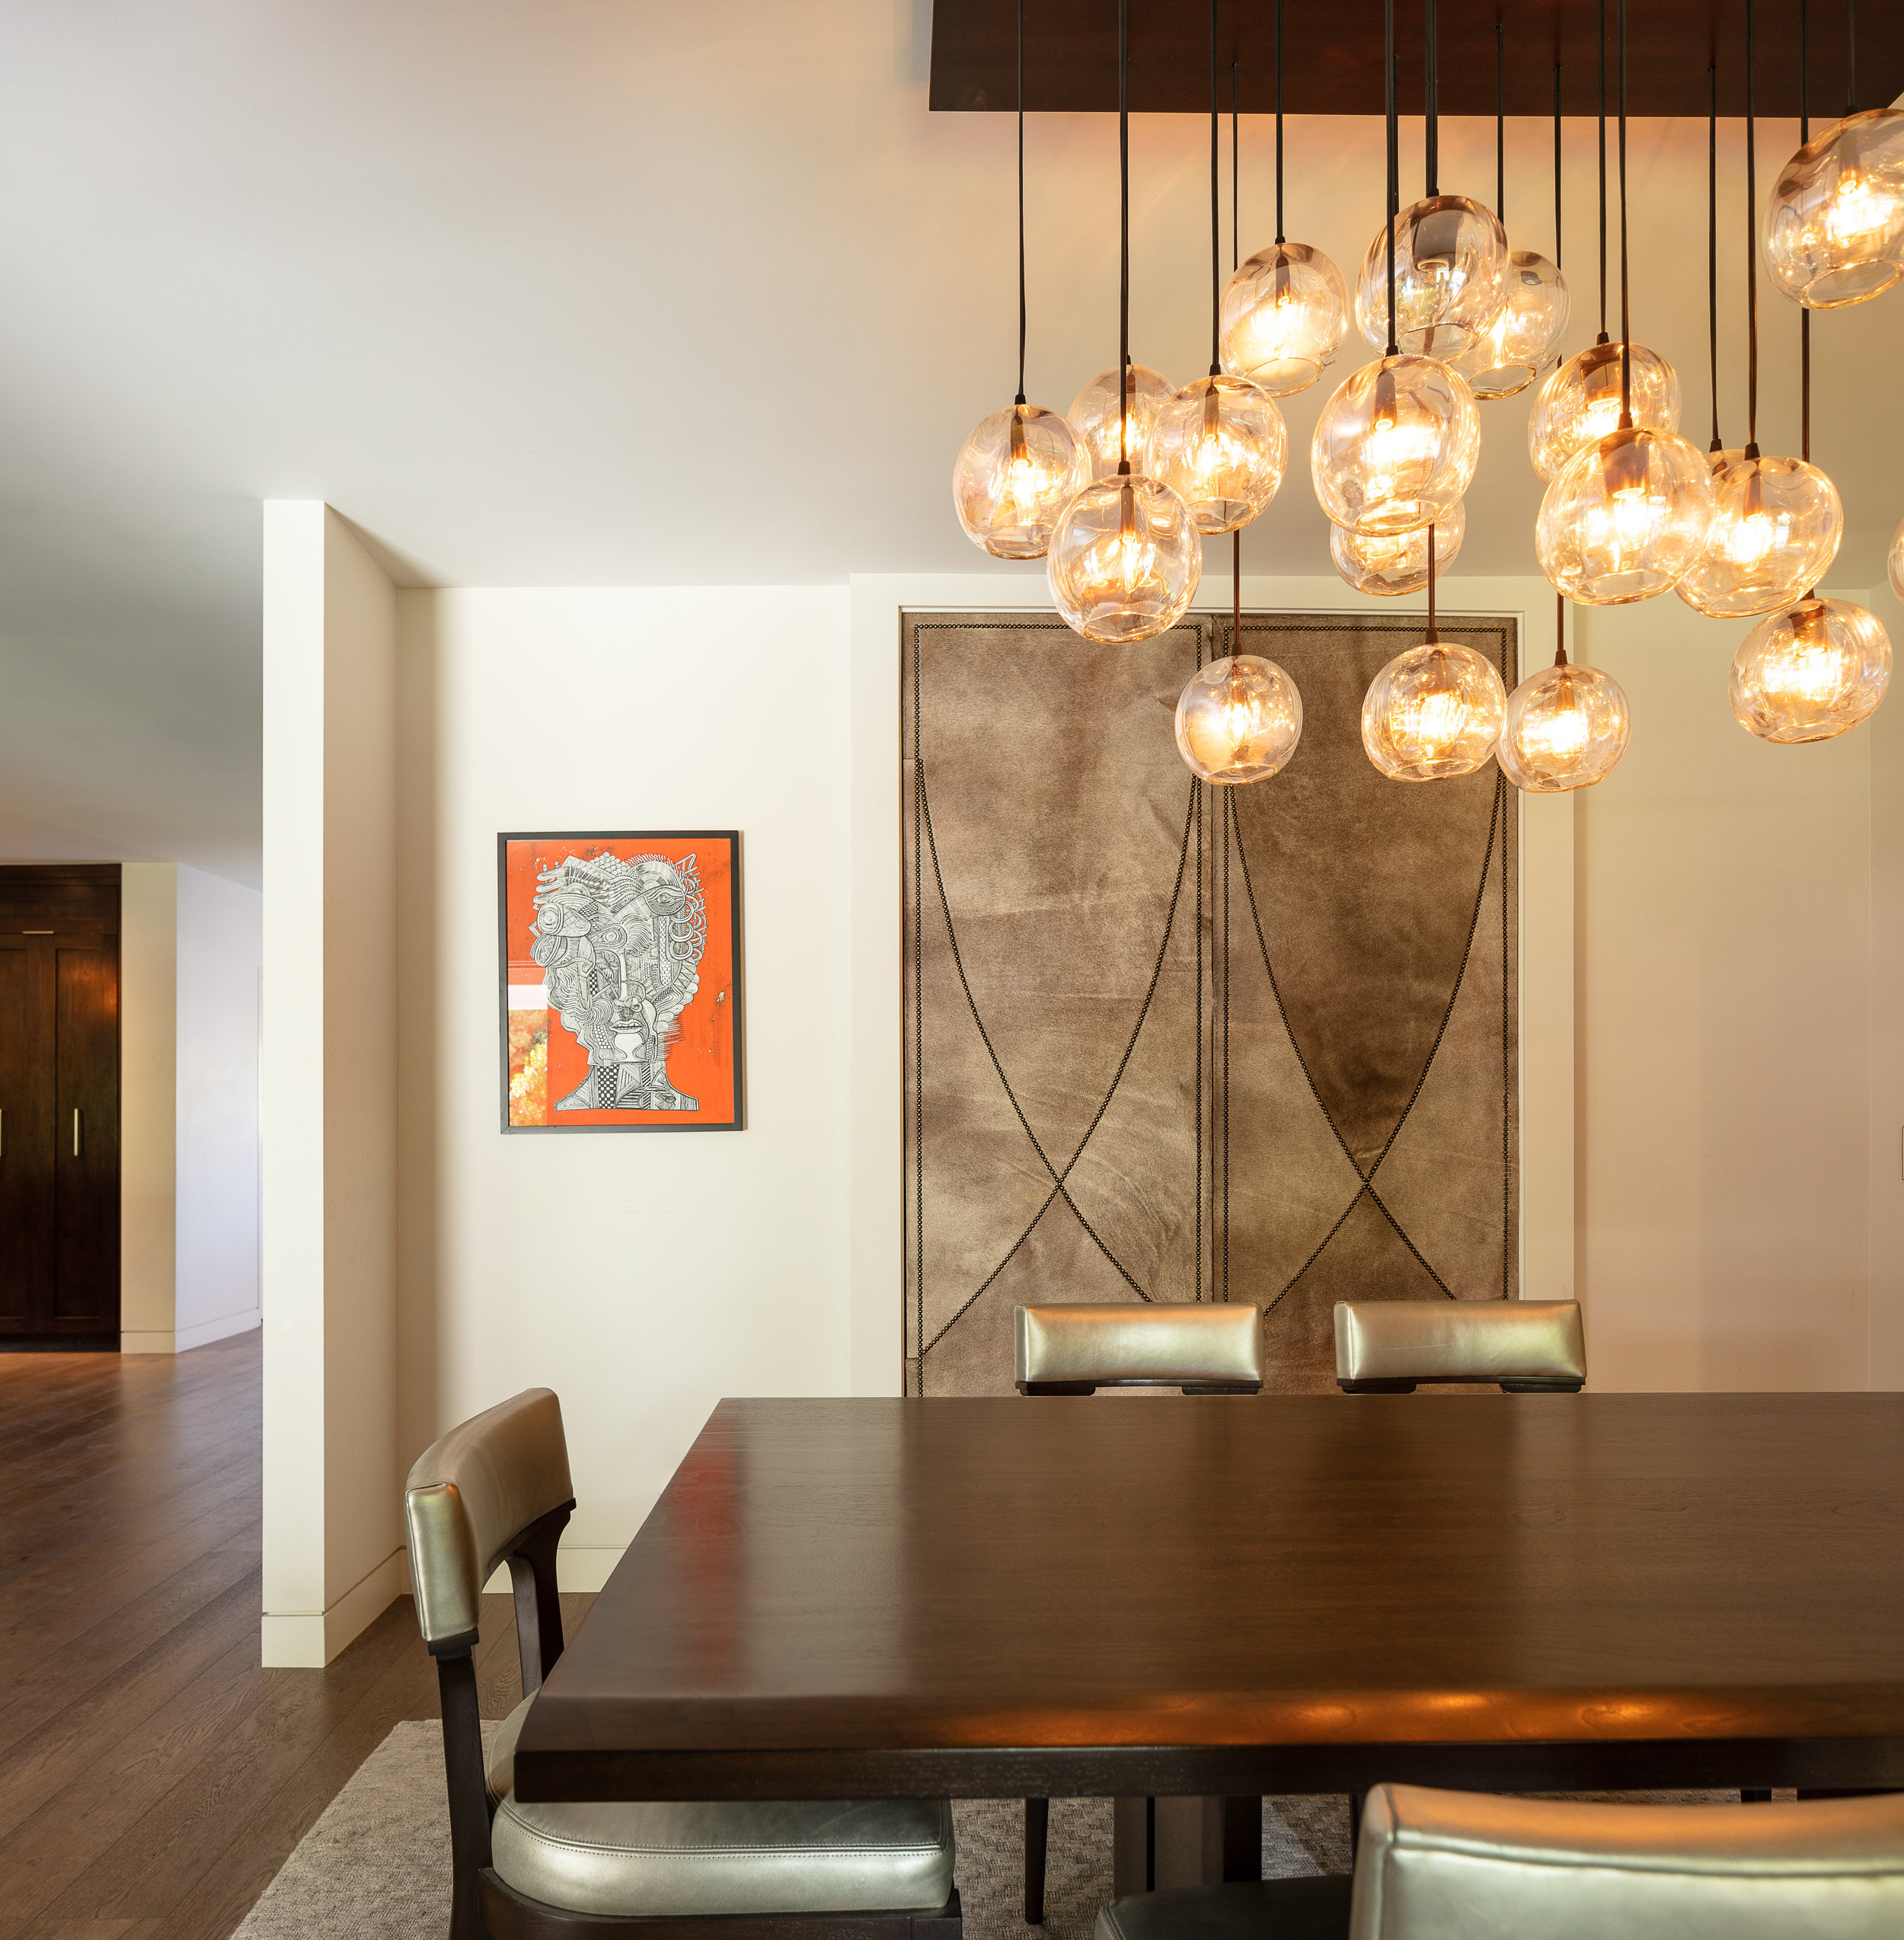 DINING ROOM WITH TOUCH LATCH HAIR-ON-HIDE DOORS TO EXTRA STORAGE AREA